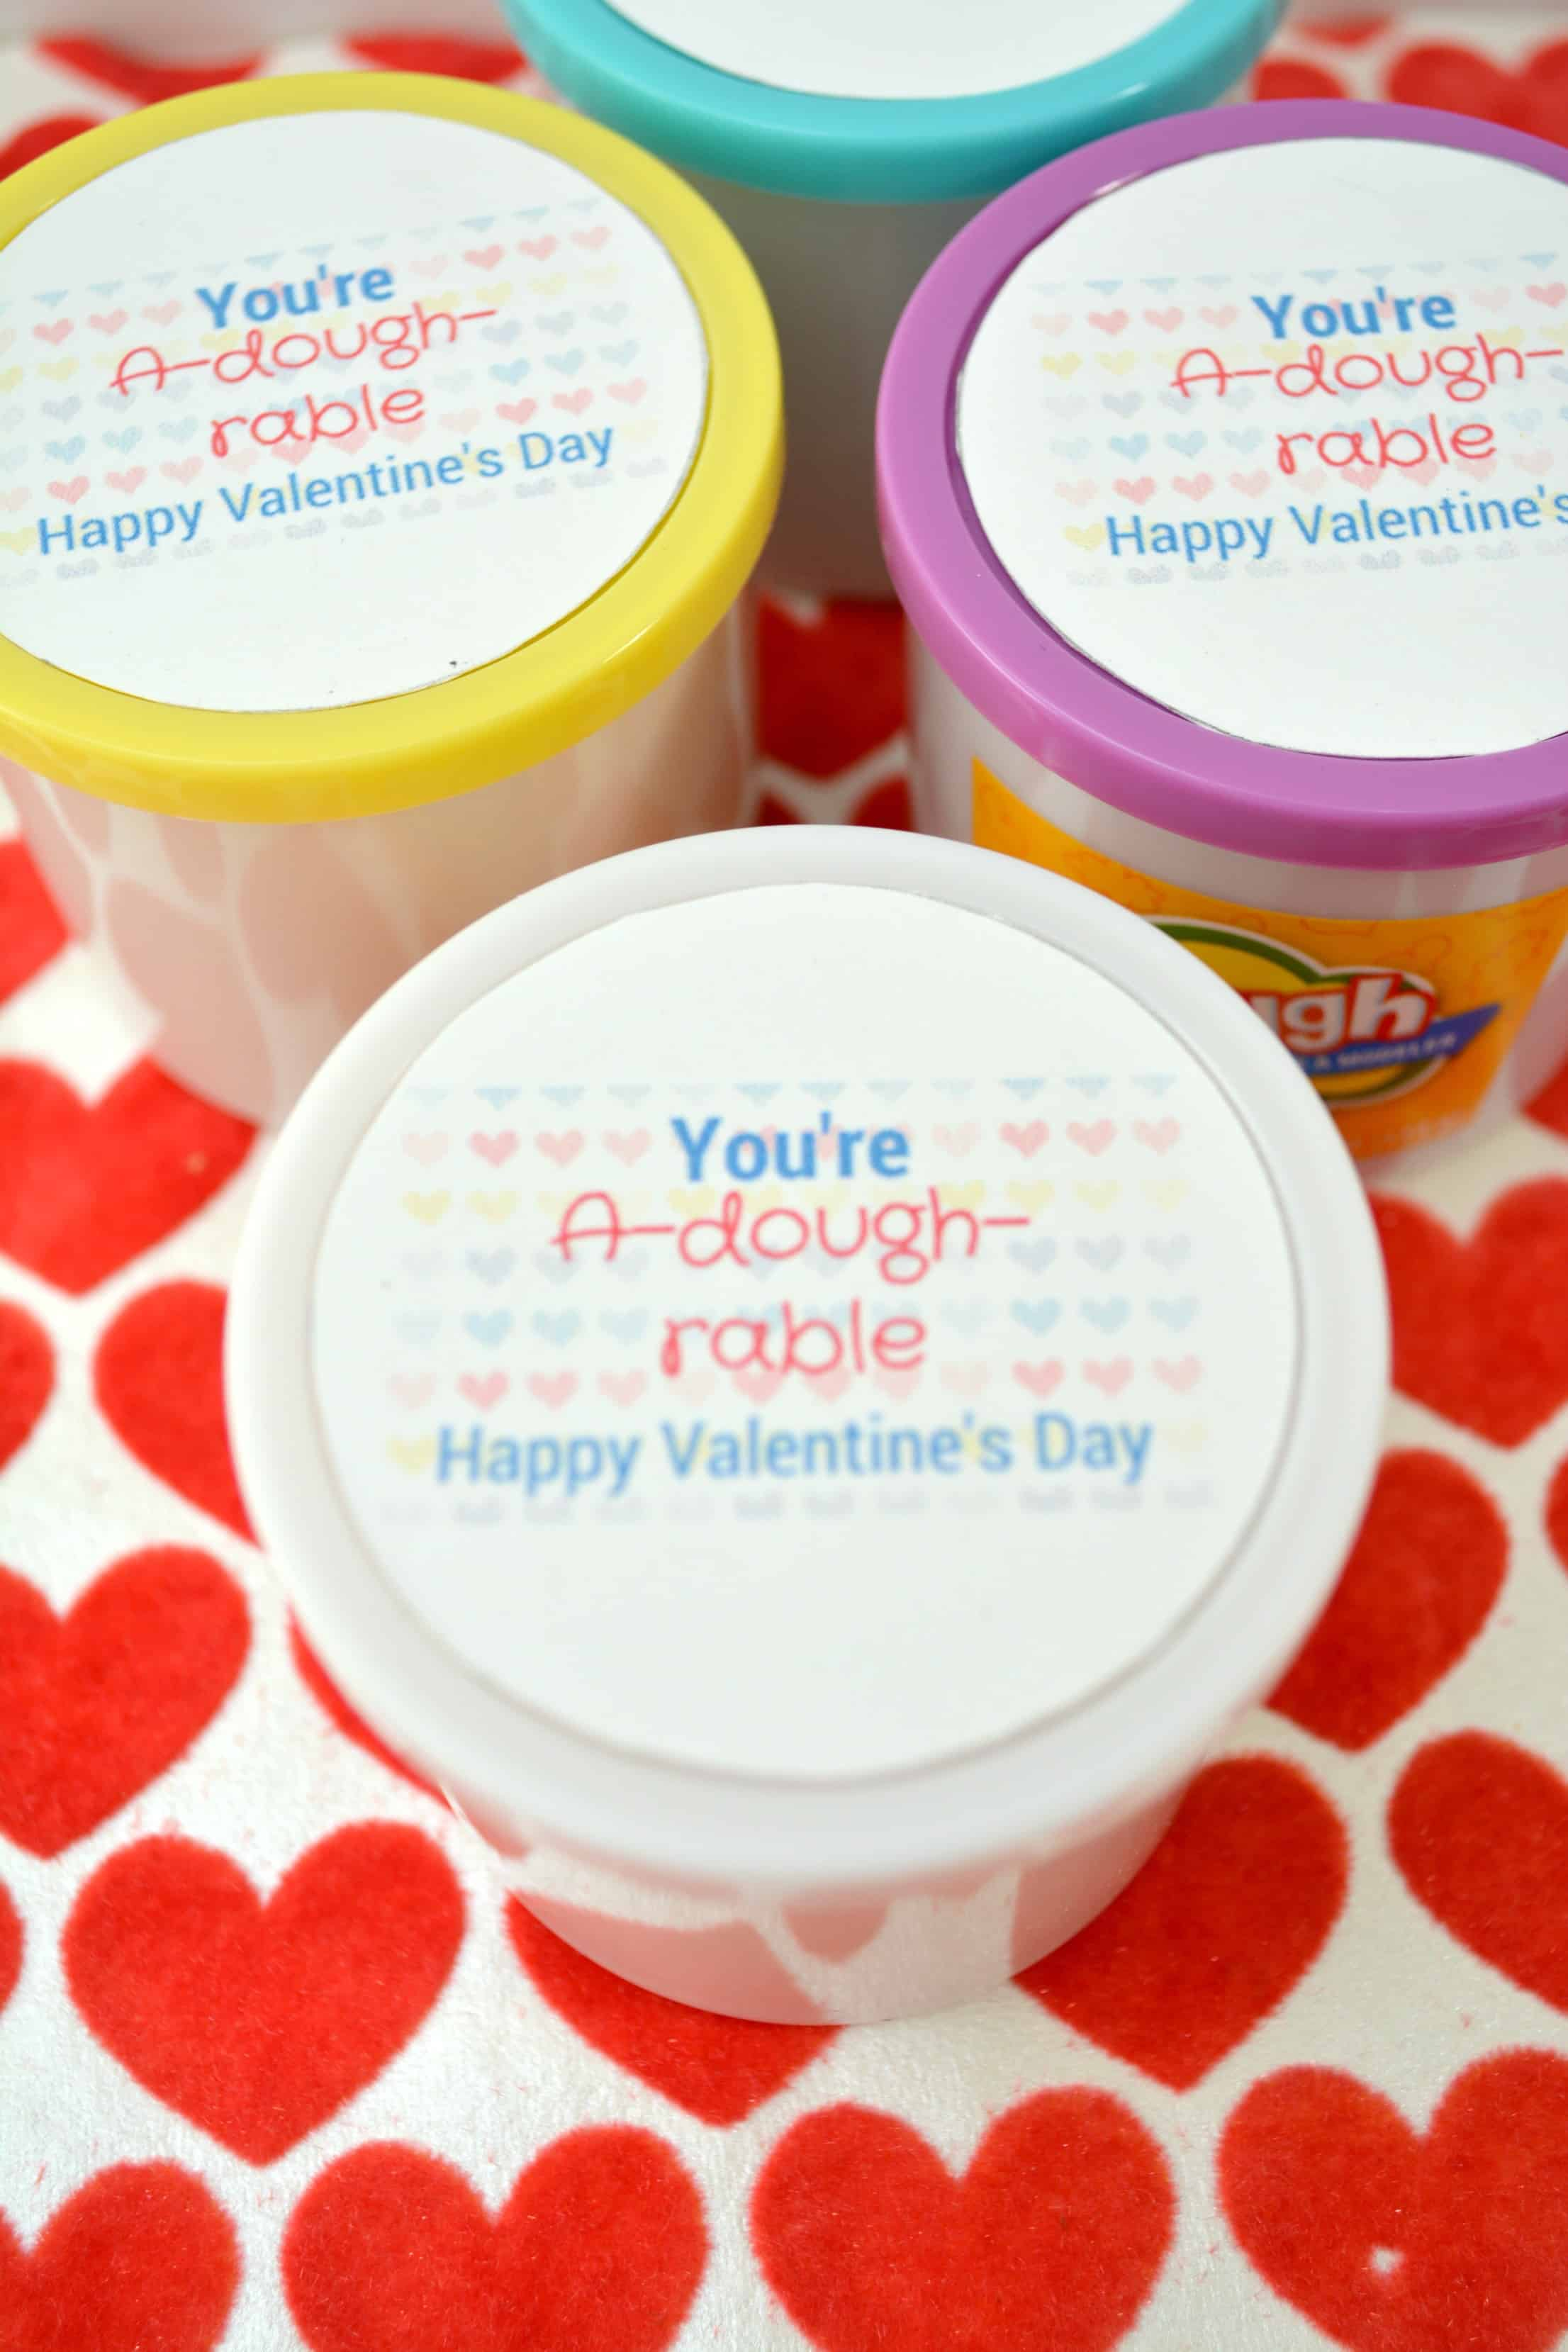 You're A-dough-rable Kids Printable Valentine